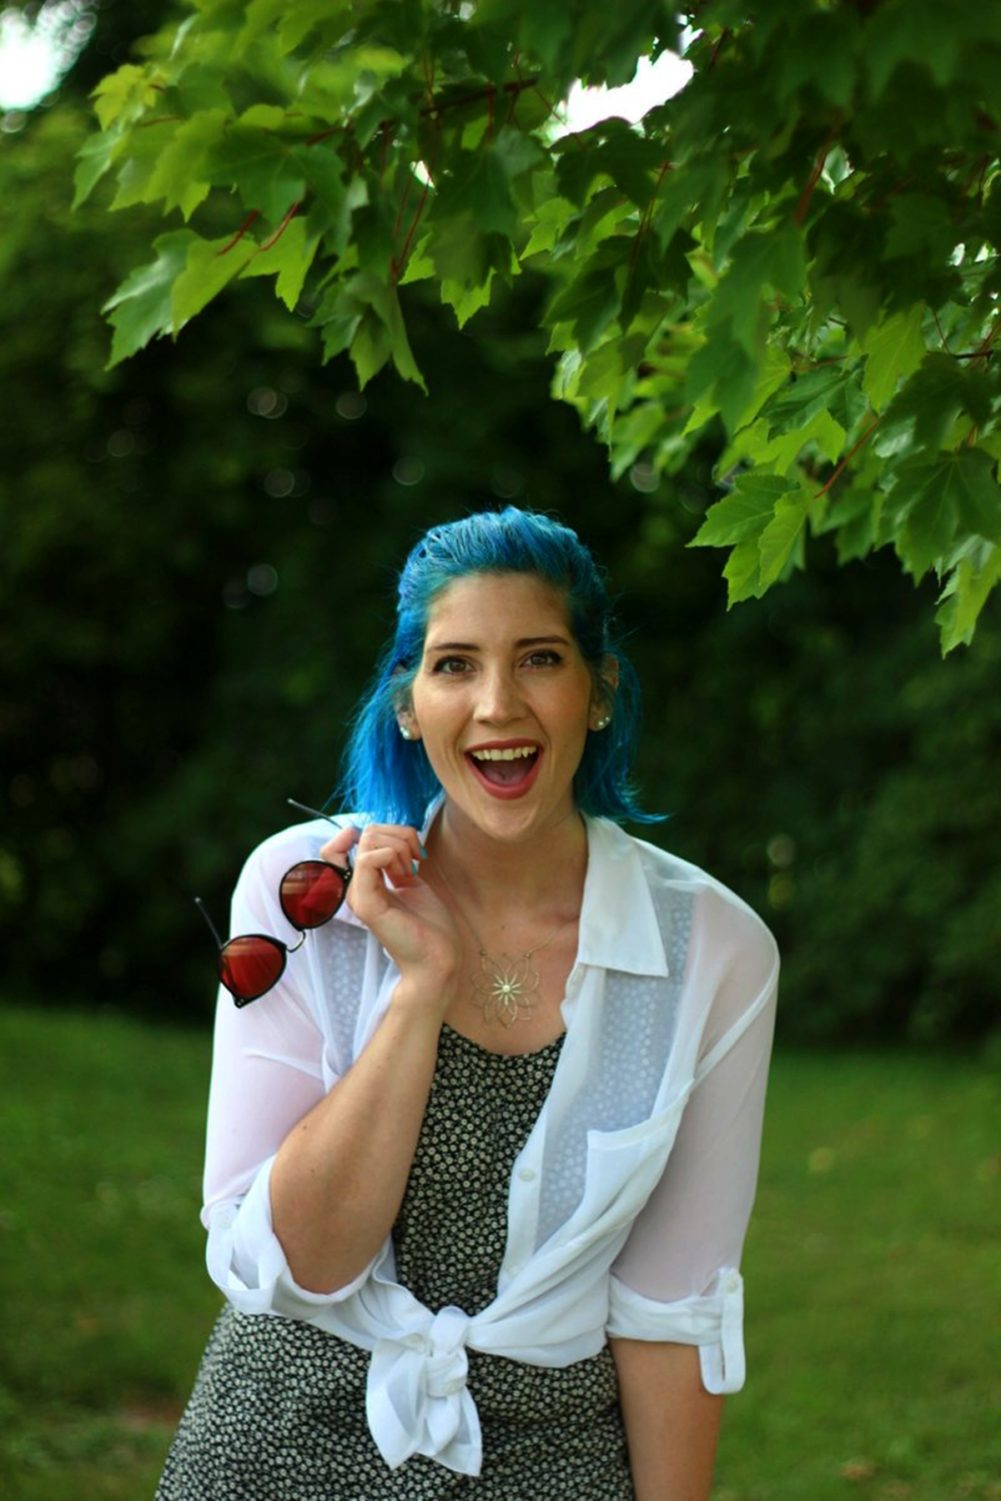 floral-dress-90s-blue-hair-outfit-03